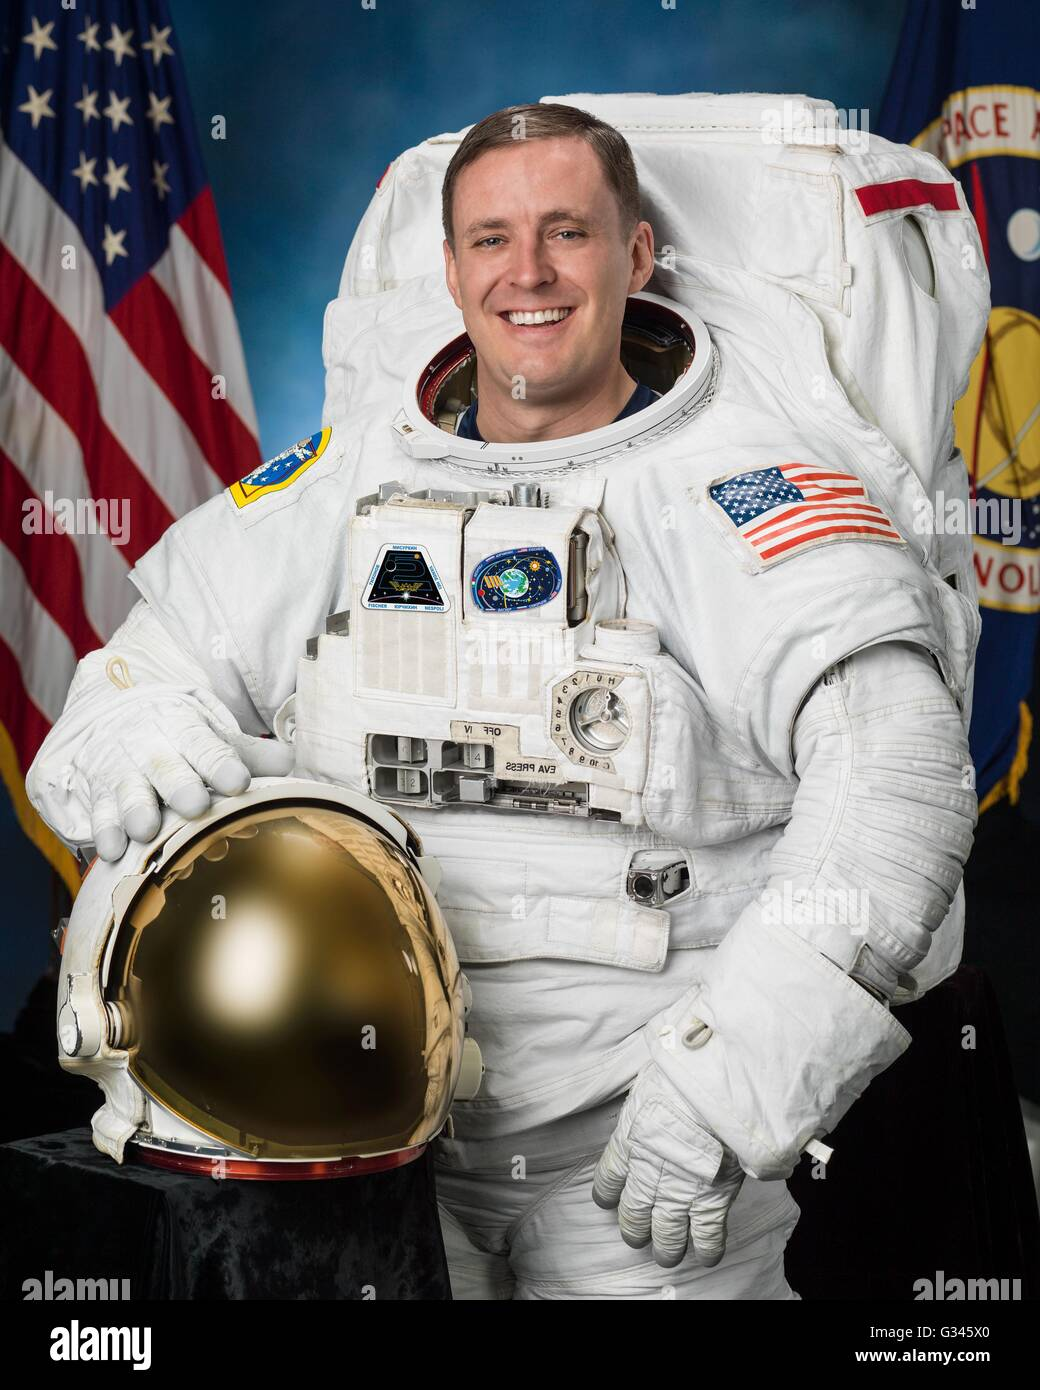 iss for space suits - photo #25